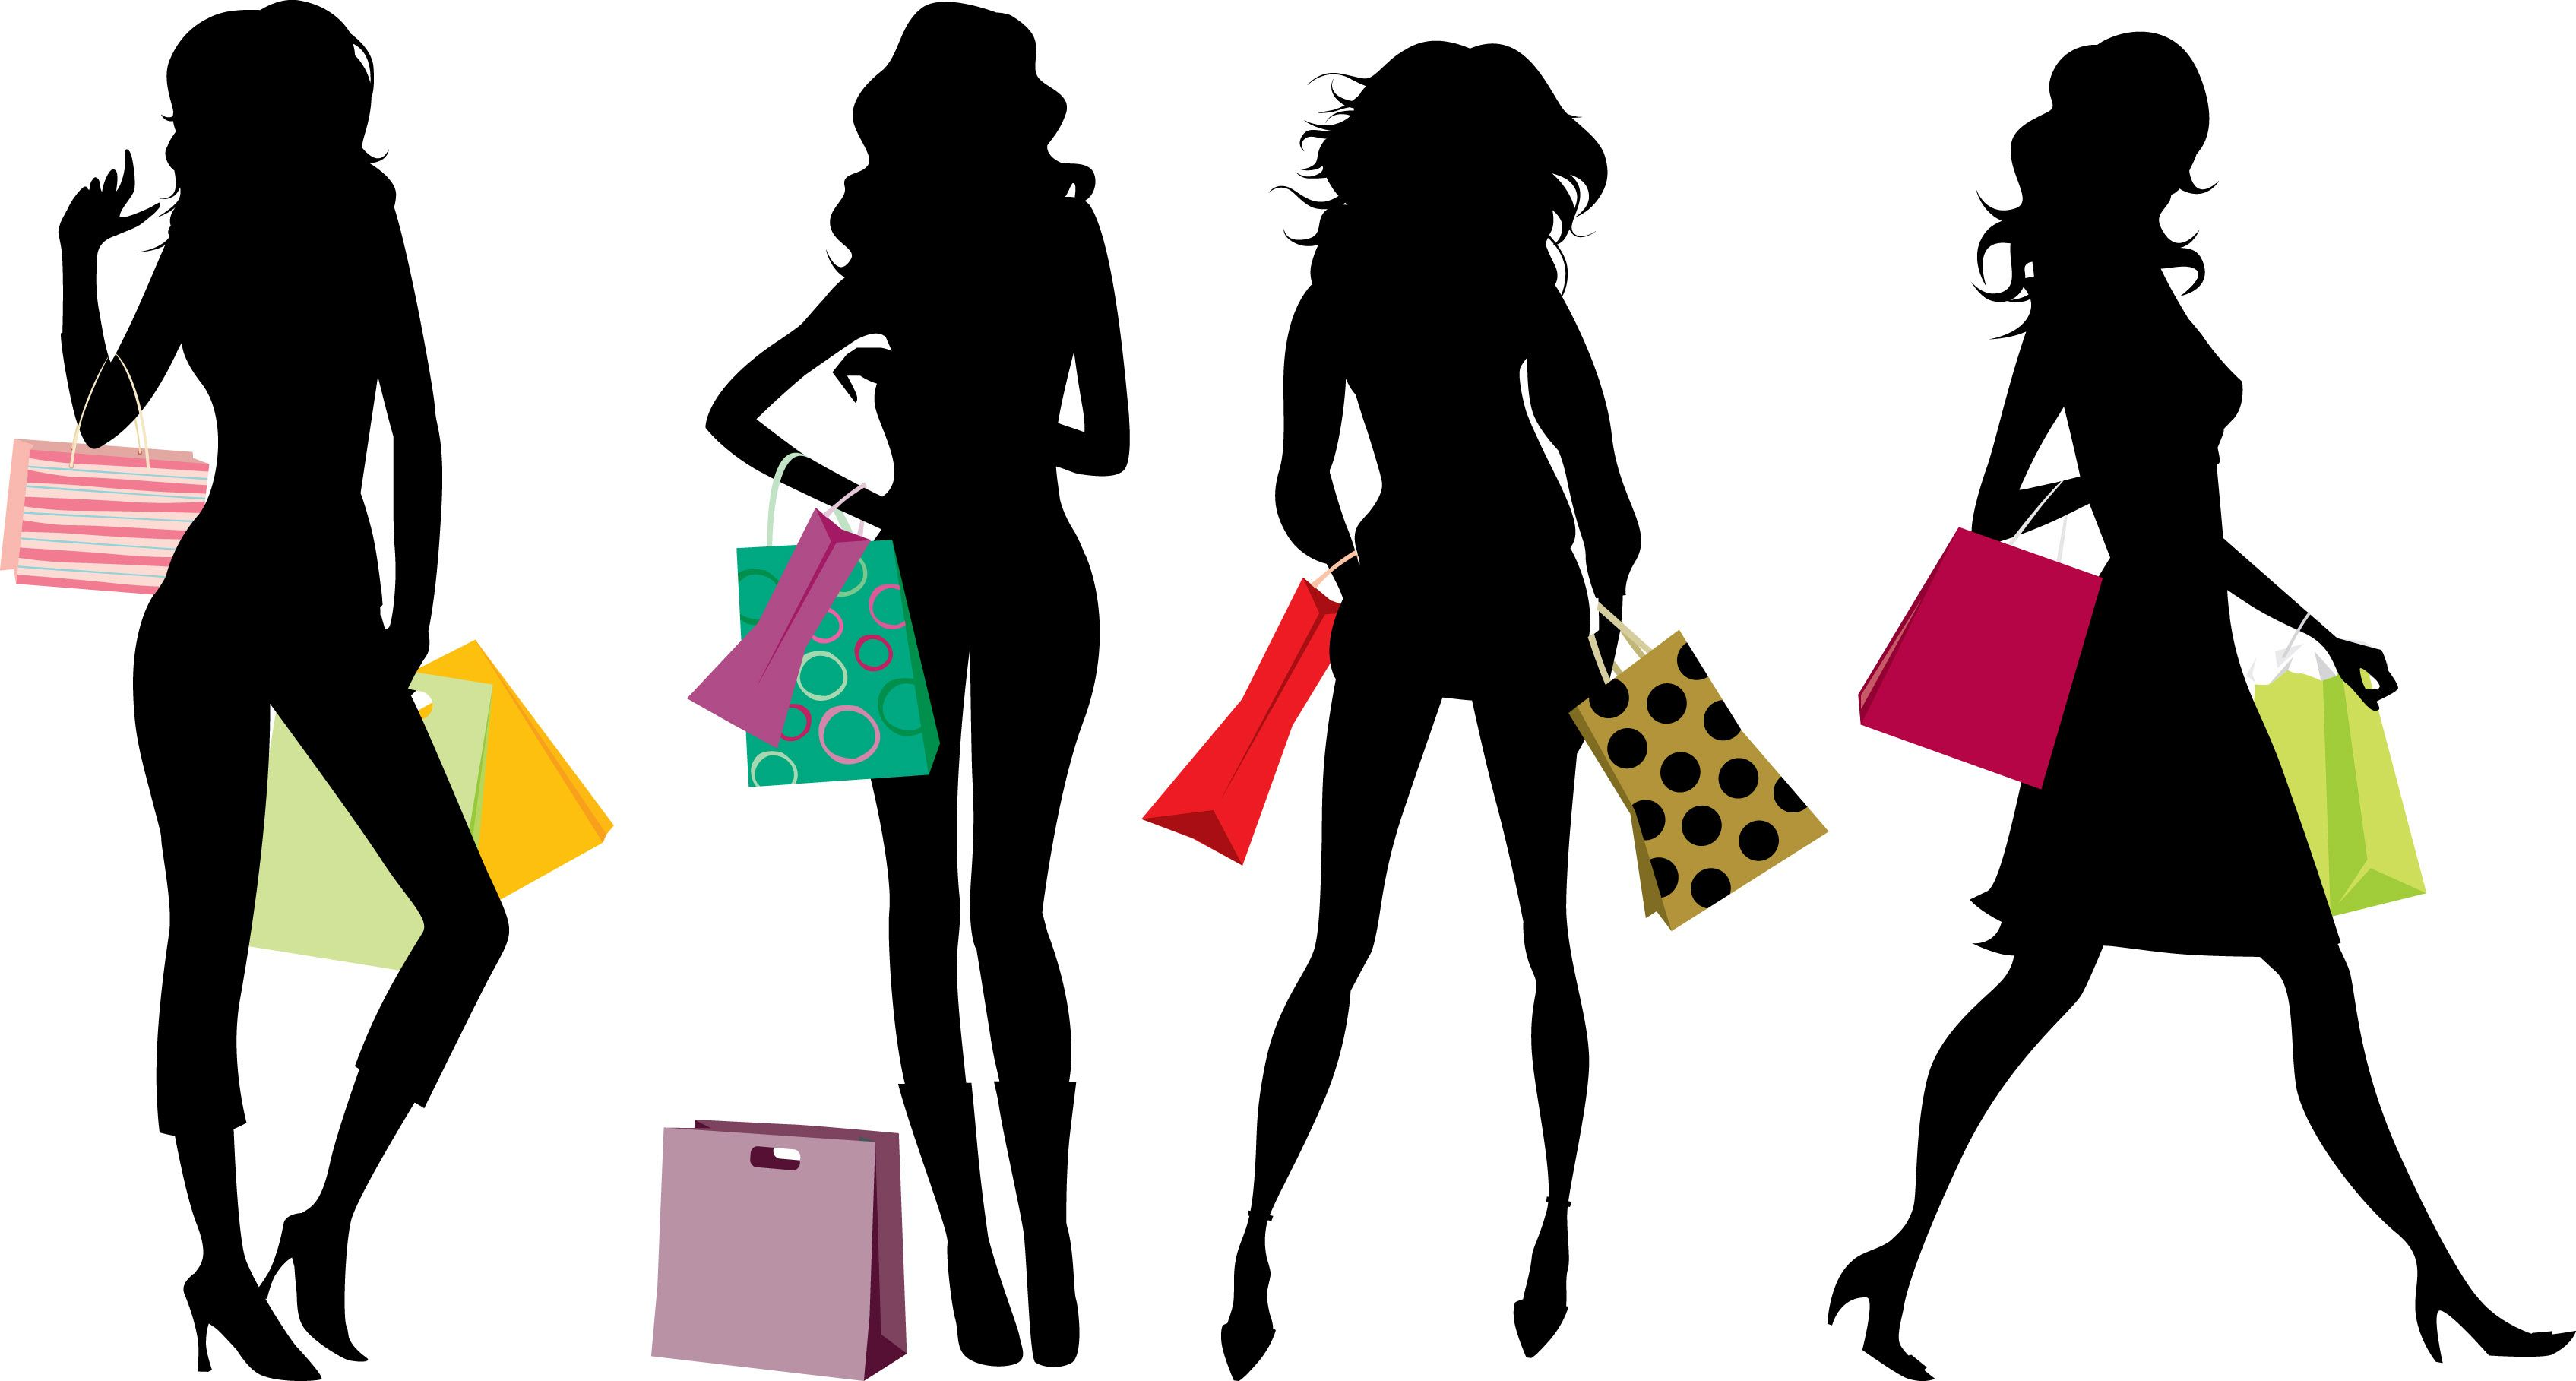 shopping as a plus sized person shopping clipart shop smart and rh pinterest com women shopping clip art free woman grocery shopping clipart